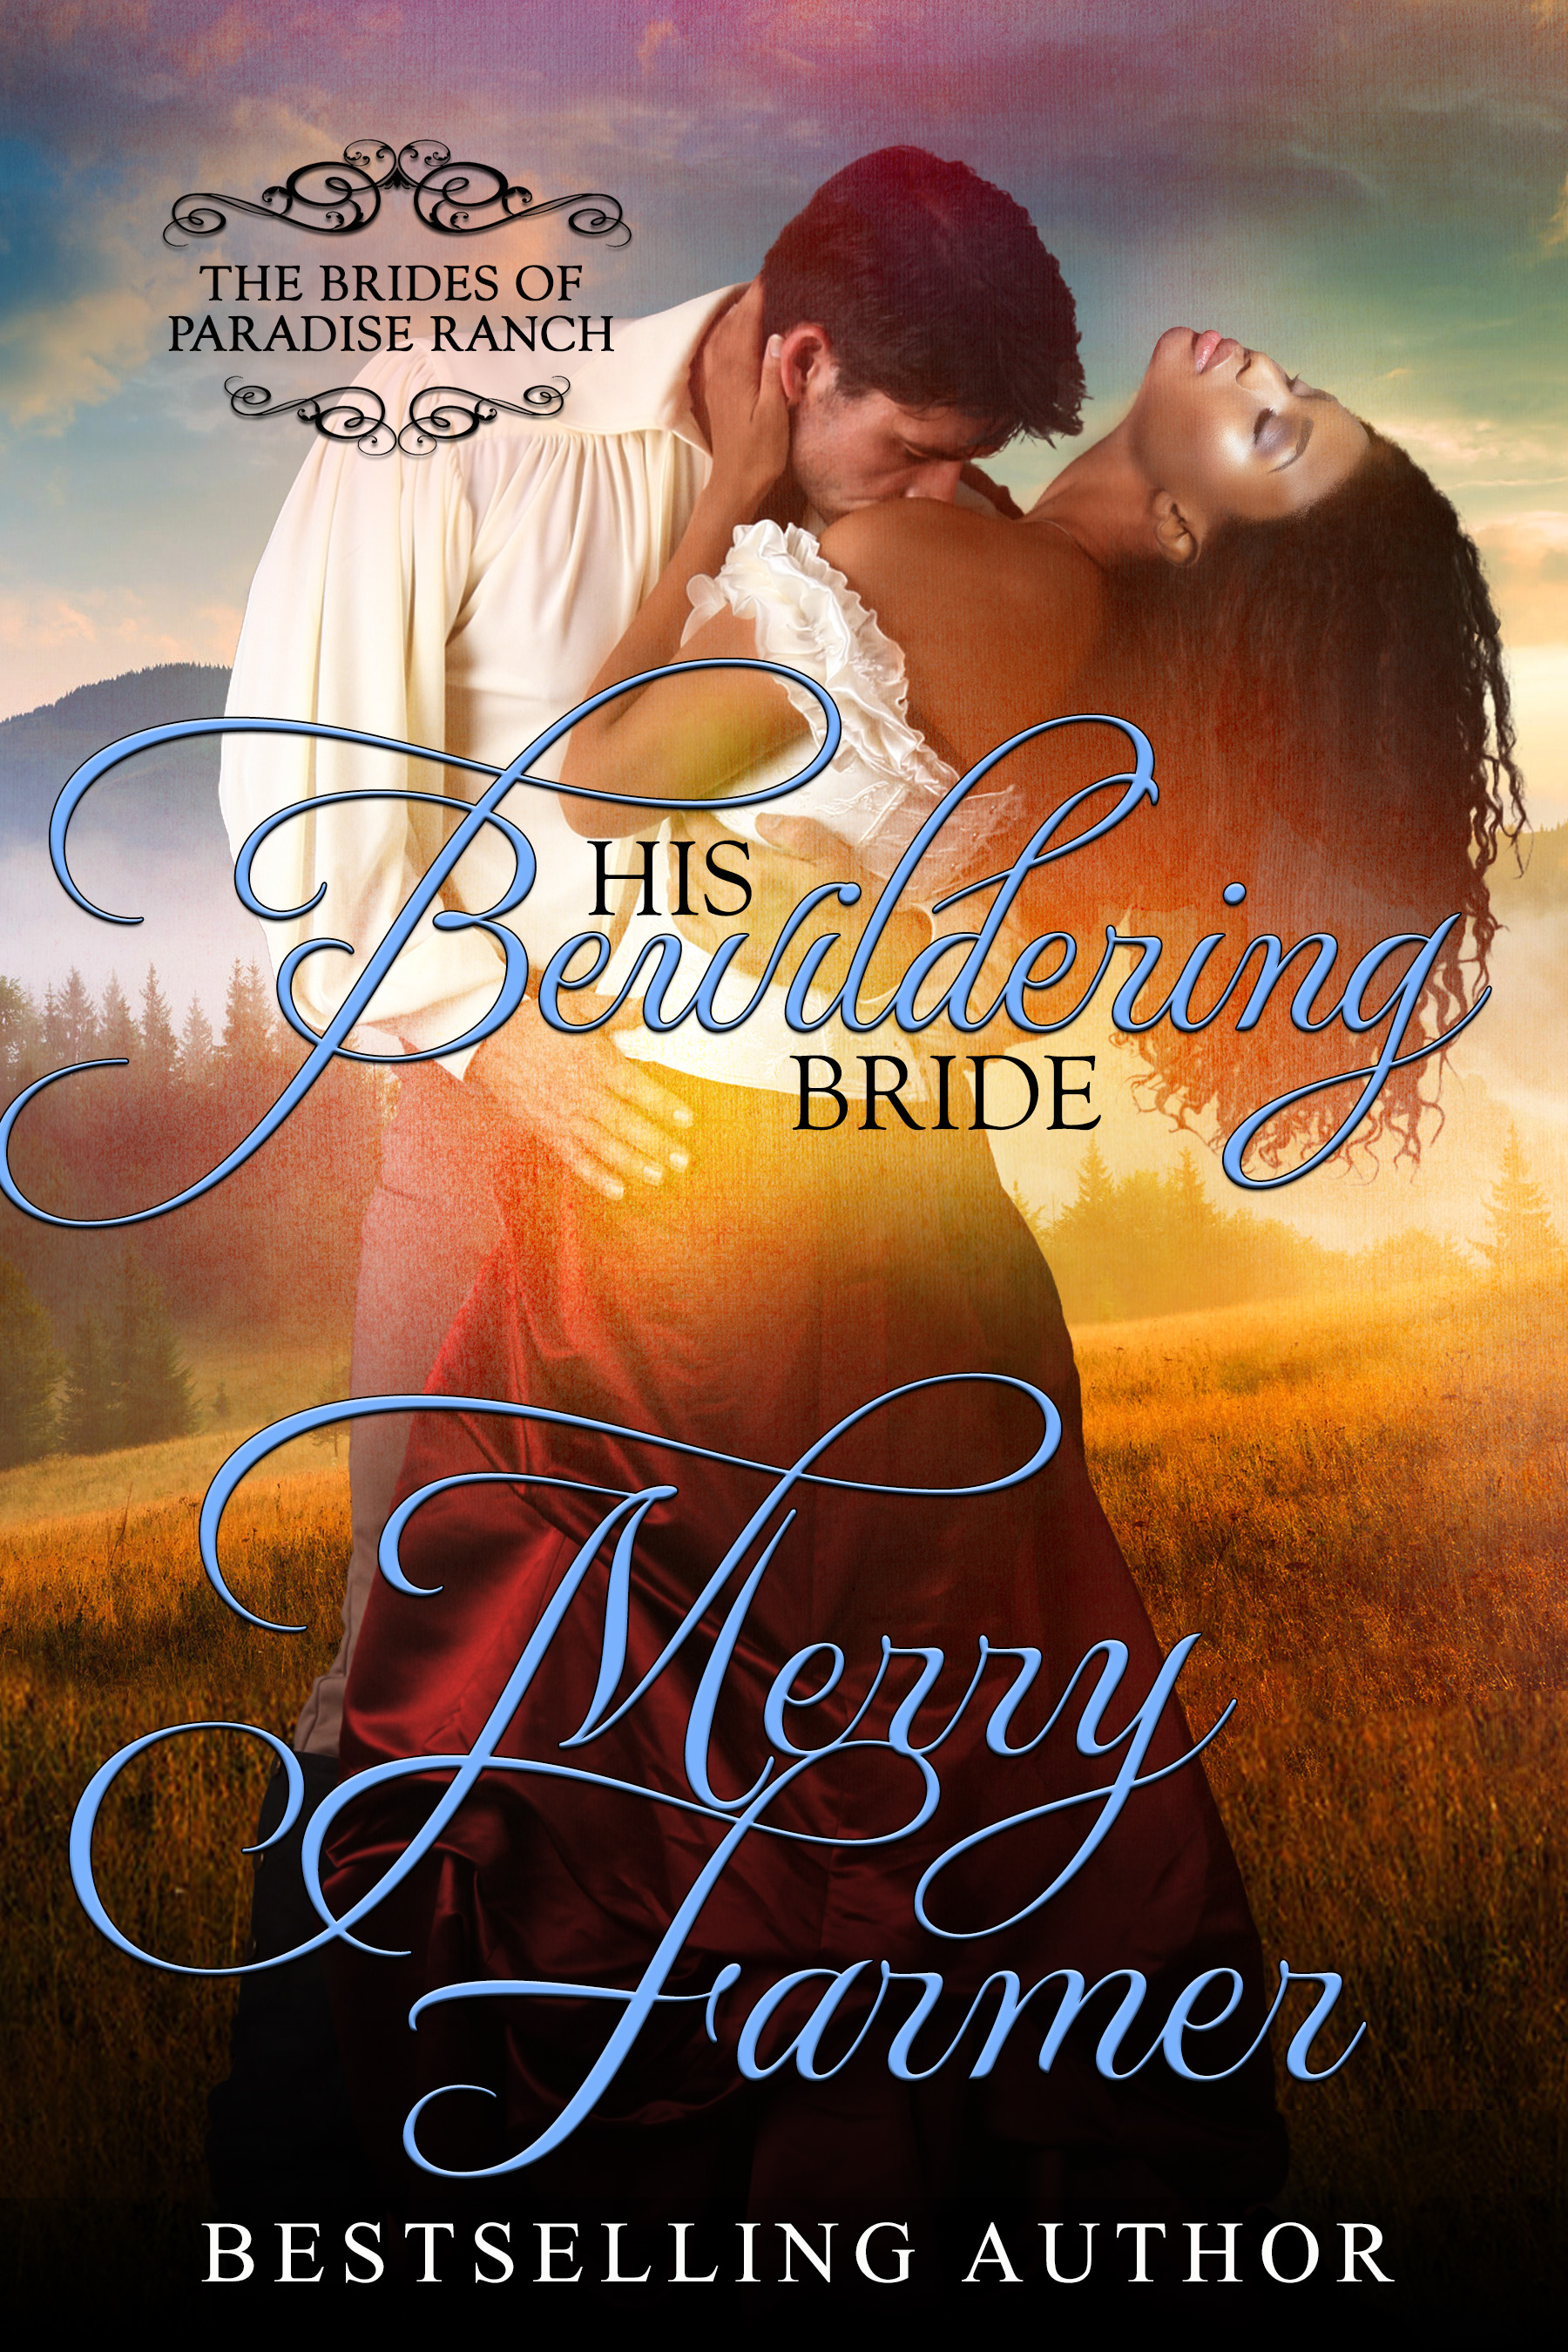 """His Bewildering Bride (Book 3) - Seamstress Wendy Weatherford is overjoyed when she is offered the chance to be a mail-order bride for one of the men of Paradise Ranch. When she arrives in Haskell, Wyoming, her intended groom takes one look at her and refuses to go through with the wedding. He wasn't expecting his bride to be a former slave. Abandoned at the altar and alone on the frontier, Wendy doesn't know where to turn.Until rescue comes in an unlikely form.Travis Montrose has plans to start a new job and eventually own his own ranch, not to marry his brother's rejected bride. But he can't stand by and watch the exotic and beautiful Wendy suffer, particularly not when she proves to be a woman of strength and substance. Their unconventional union stirs up trouble from the start, even as it stirs passions.When Wendy is given an opportunity to compete for the chance to own her own dress shop, Travis will stop at nothing to help her win against a crooked competitor…even if it means sacrificing his future.PLEASE BE ADVISED: Steam Level = HOTIf you would like to read this story without any """"scenes,"""" check out Wendy: The Bewildering Bride"""